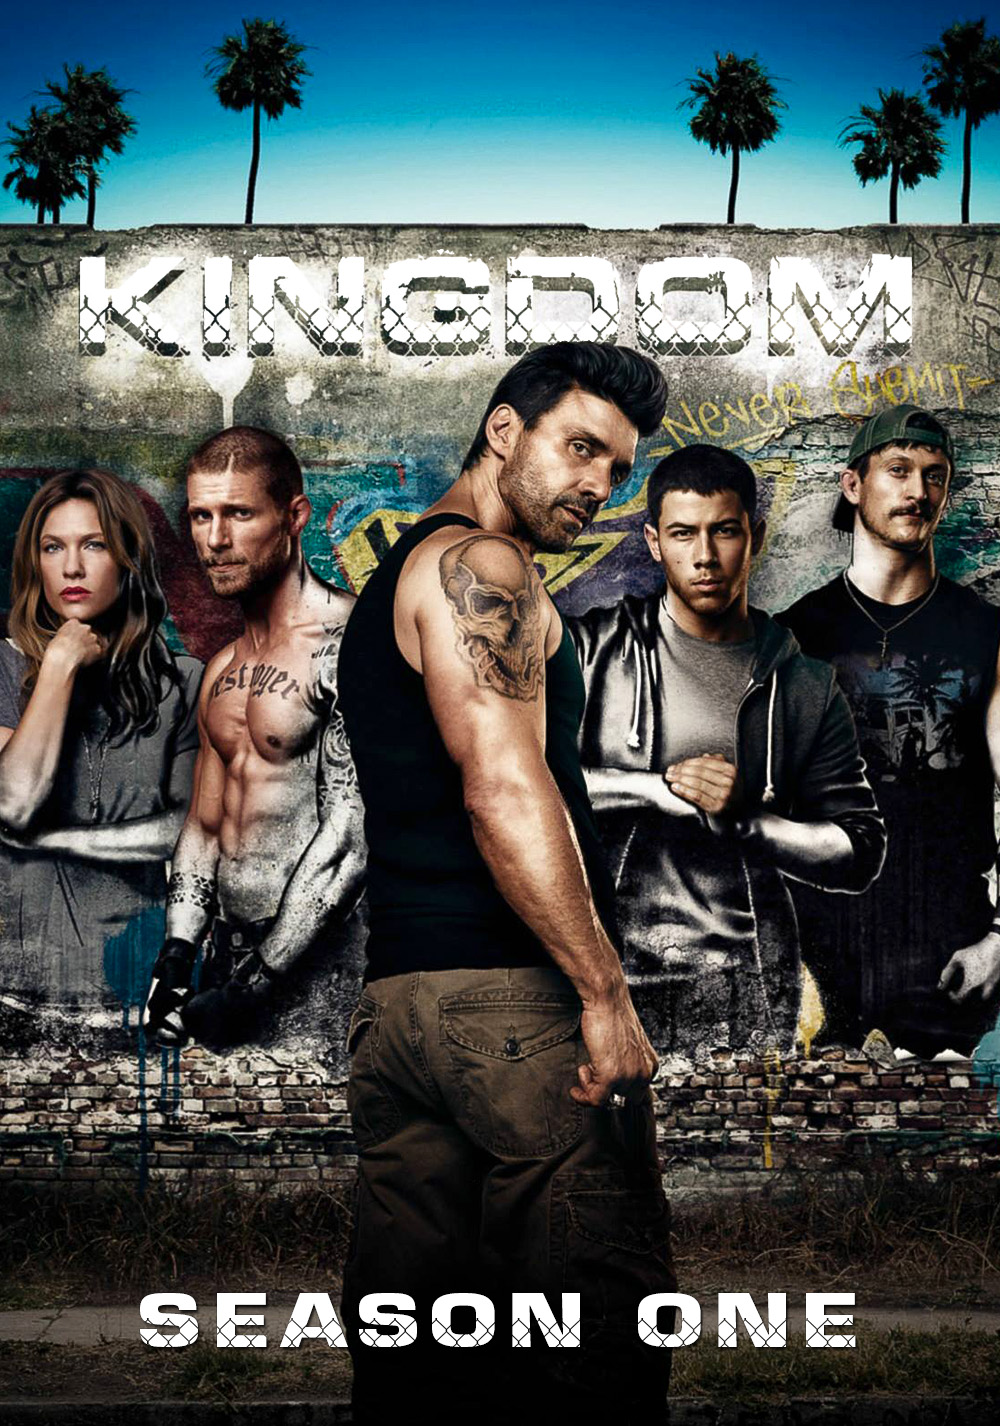 Kingdom (2014-2016) Tv series